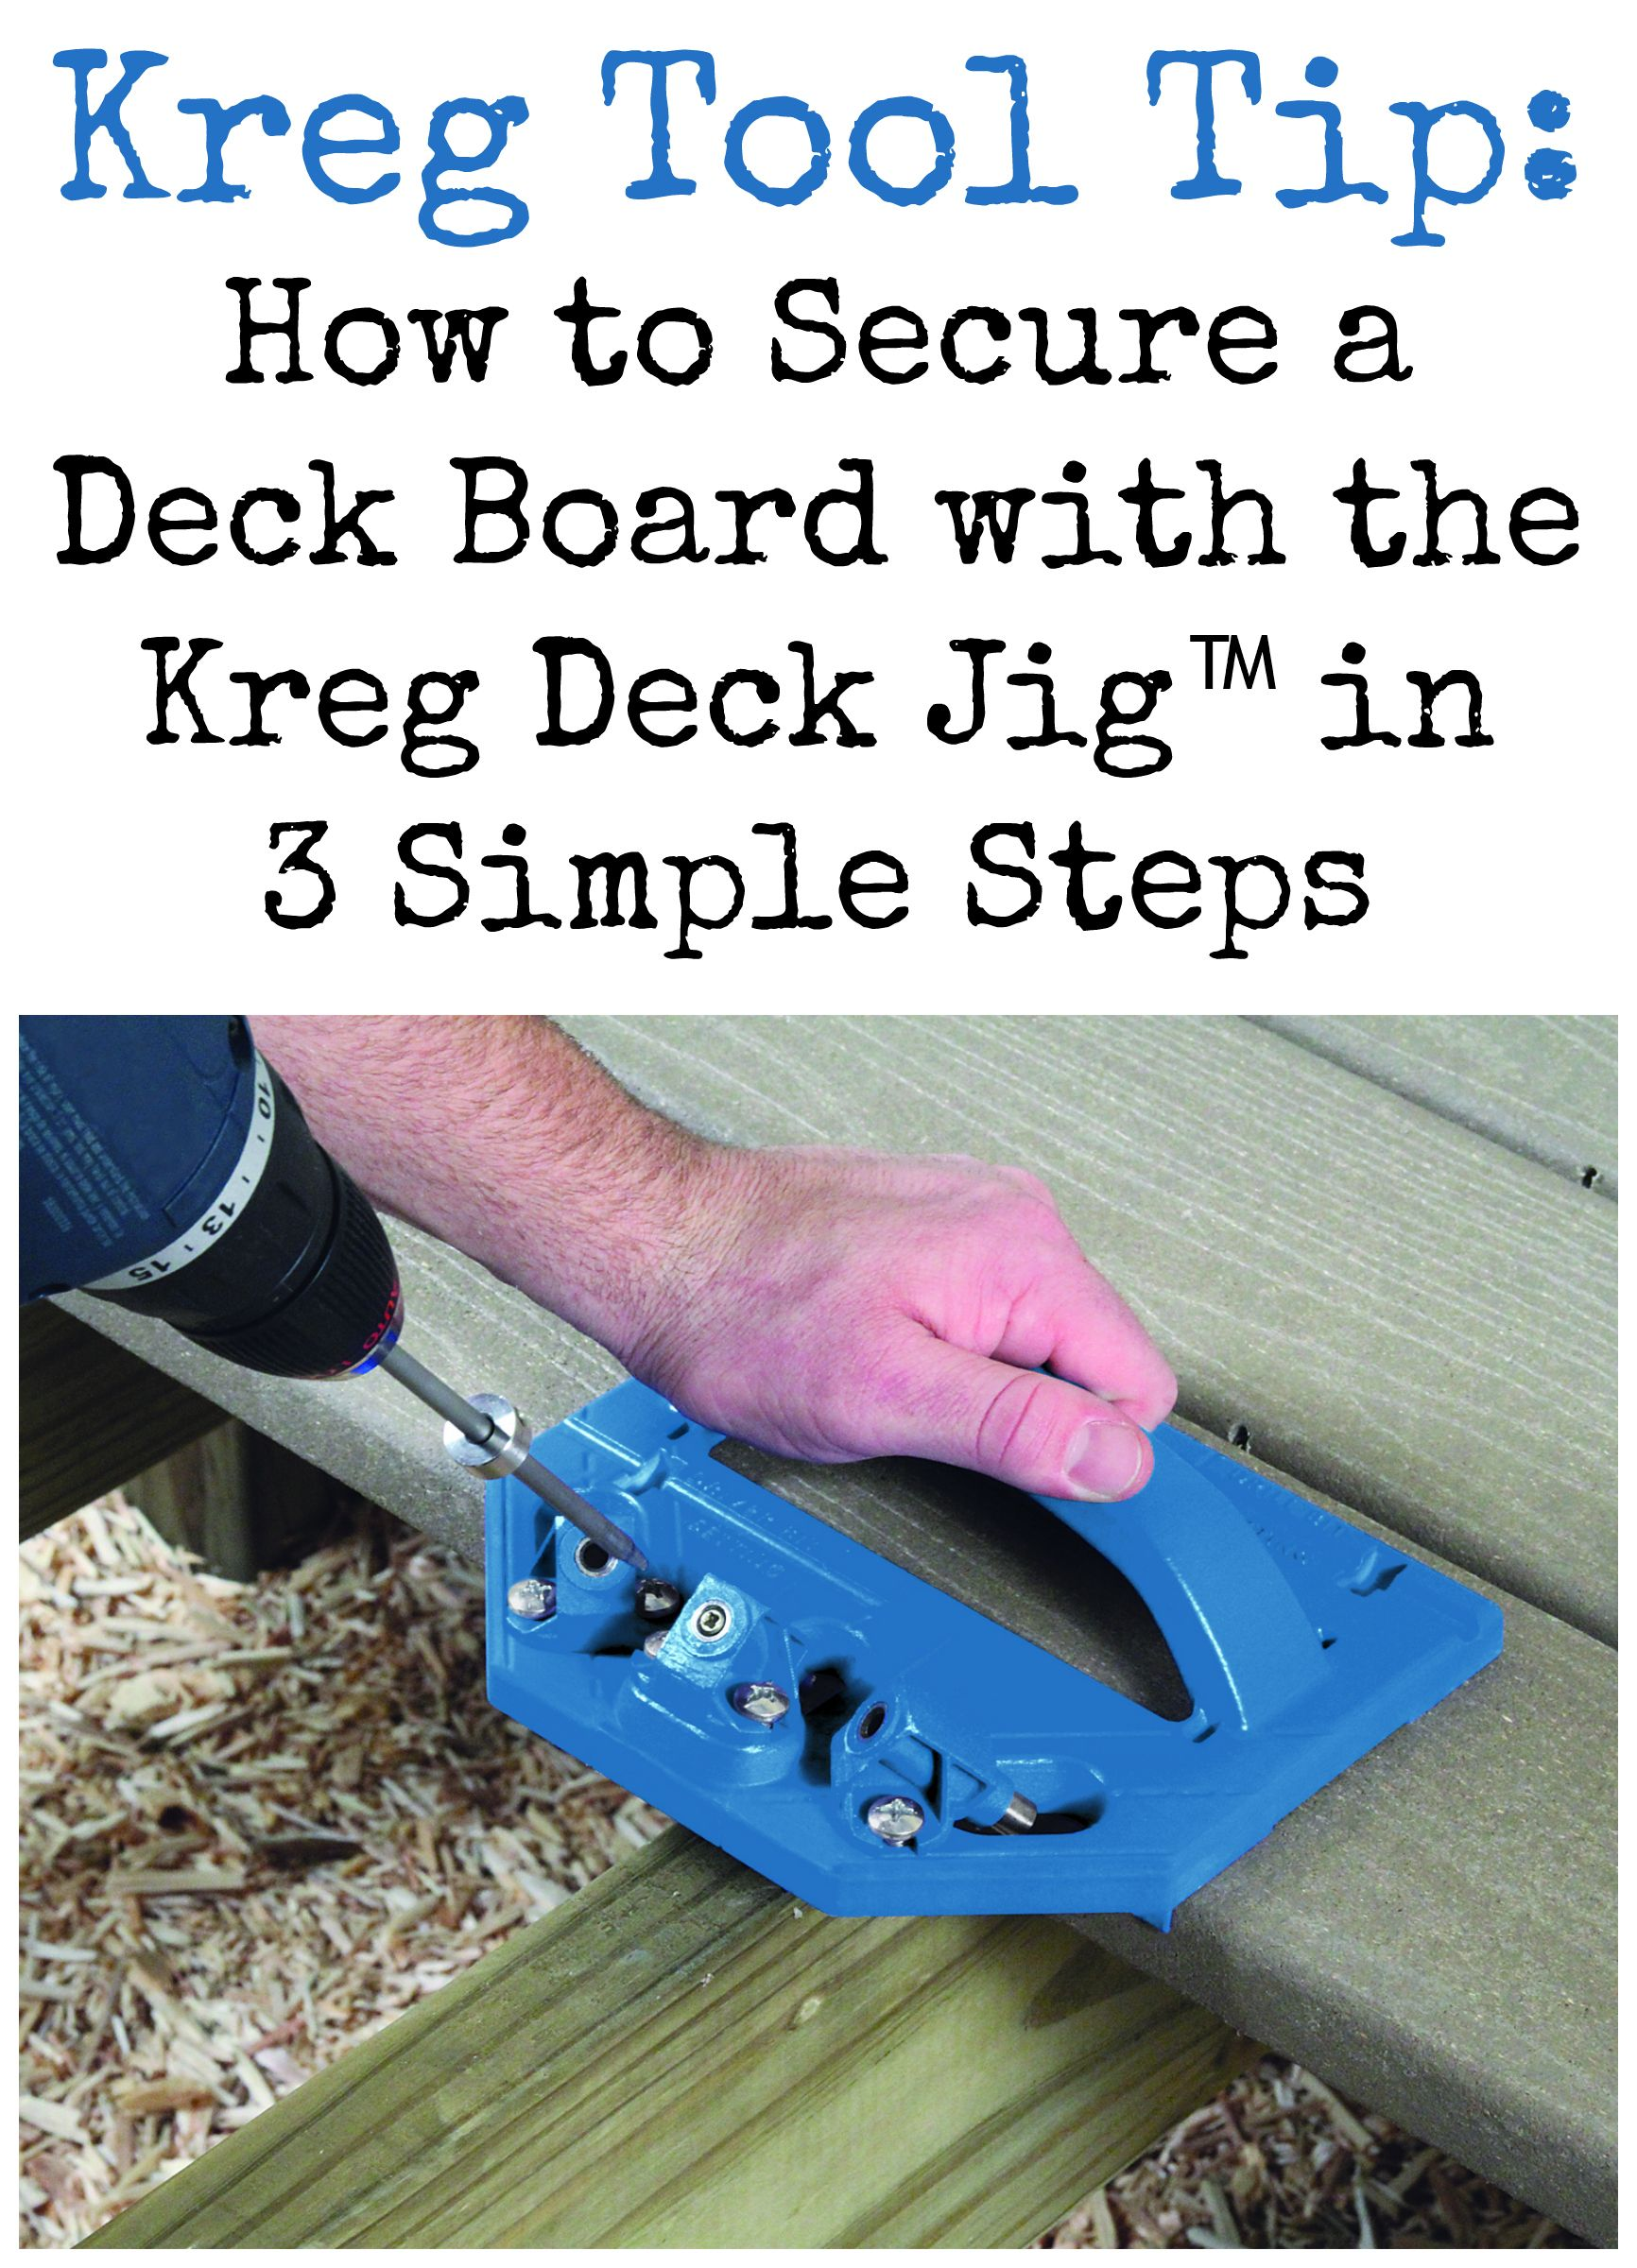 Kreg Tool Tip: How to Secure a Deck Board with Kreg Deck Jig™ in 3 Simple Steps | Watch this quick video to learn how.